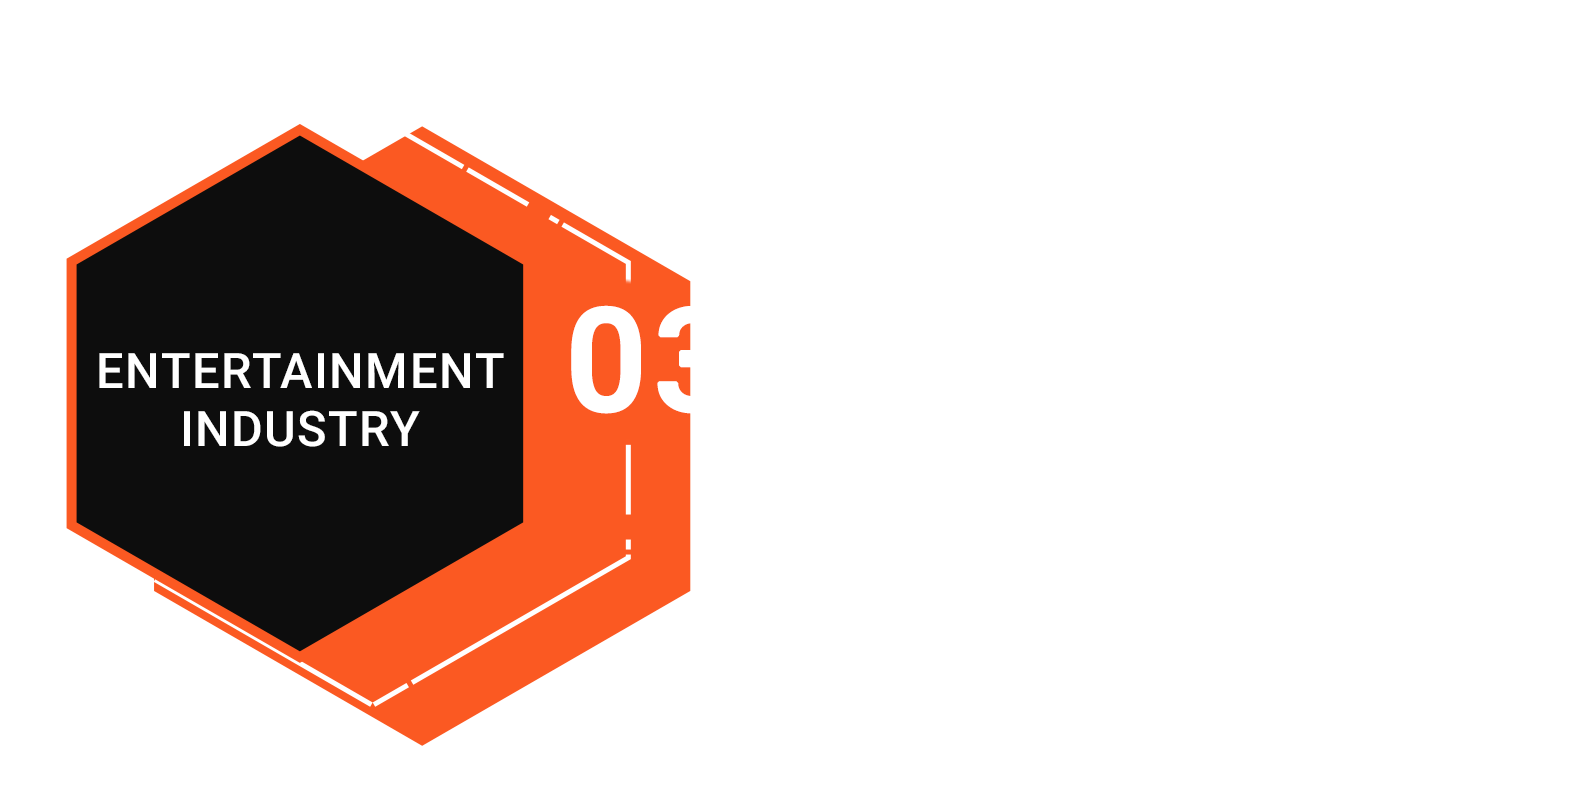 HIVE Berlin by The Esports Observer on Opportunities for Entertainment Industry